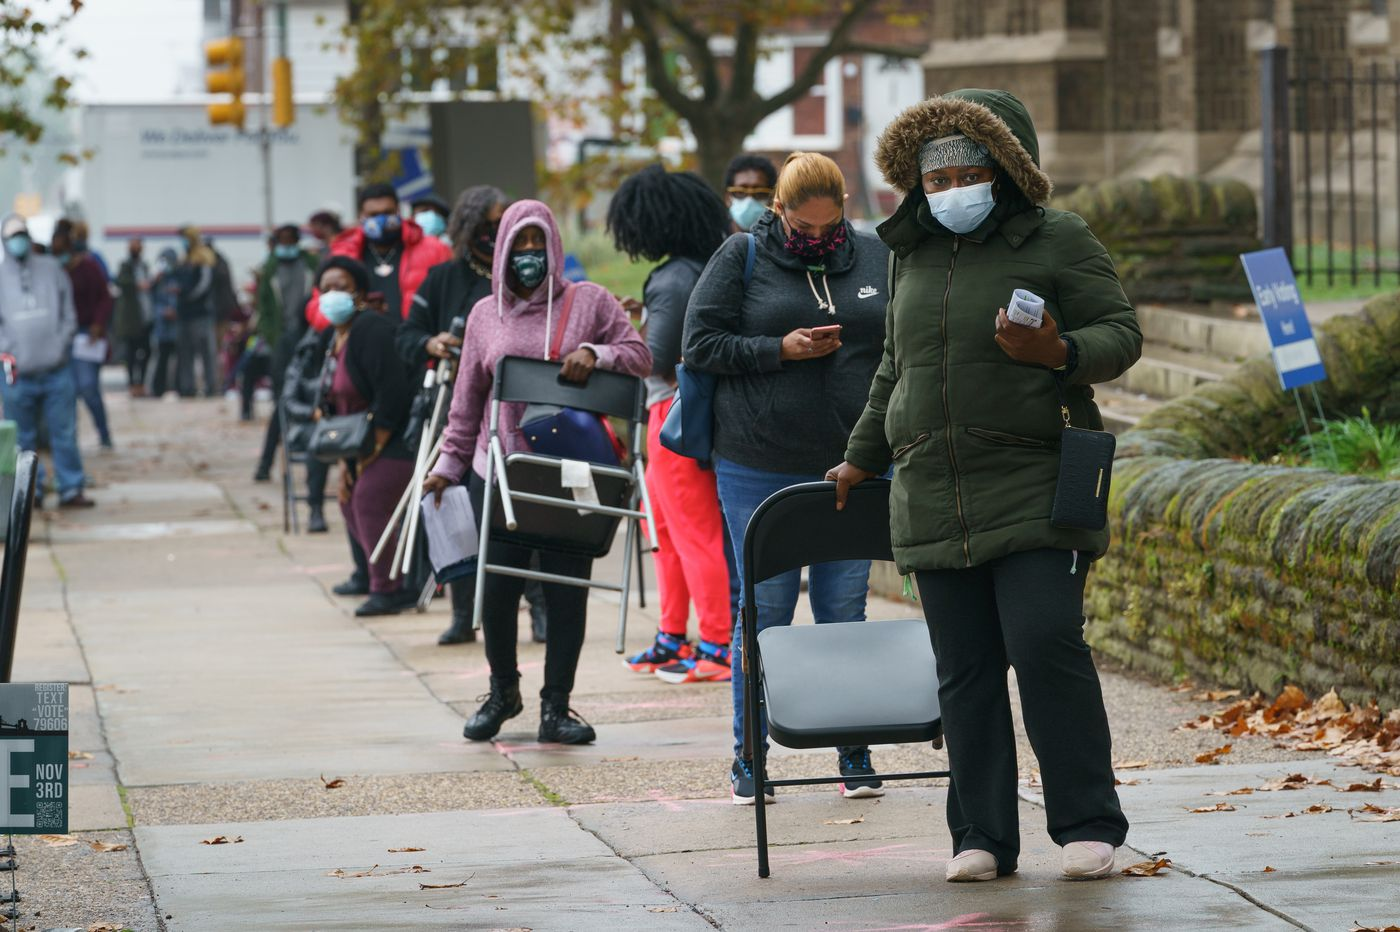 Voters across Philly wait through rain, cold, and long lines as window to cast ballots early closes